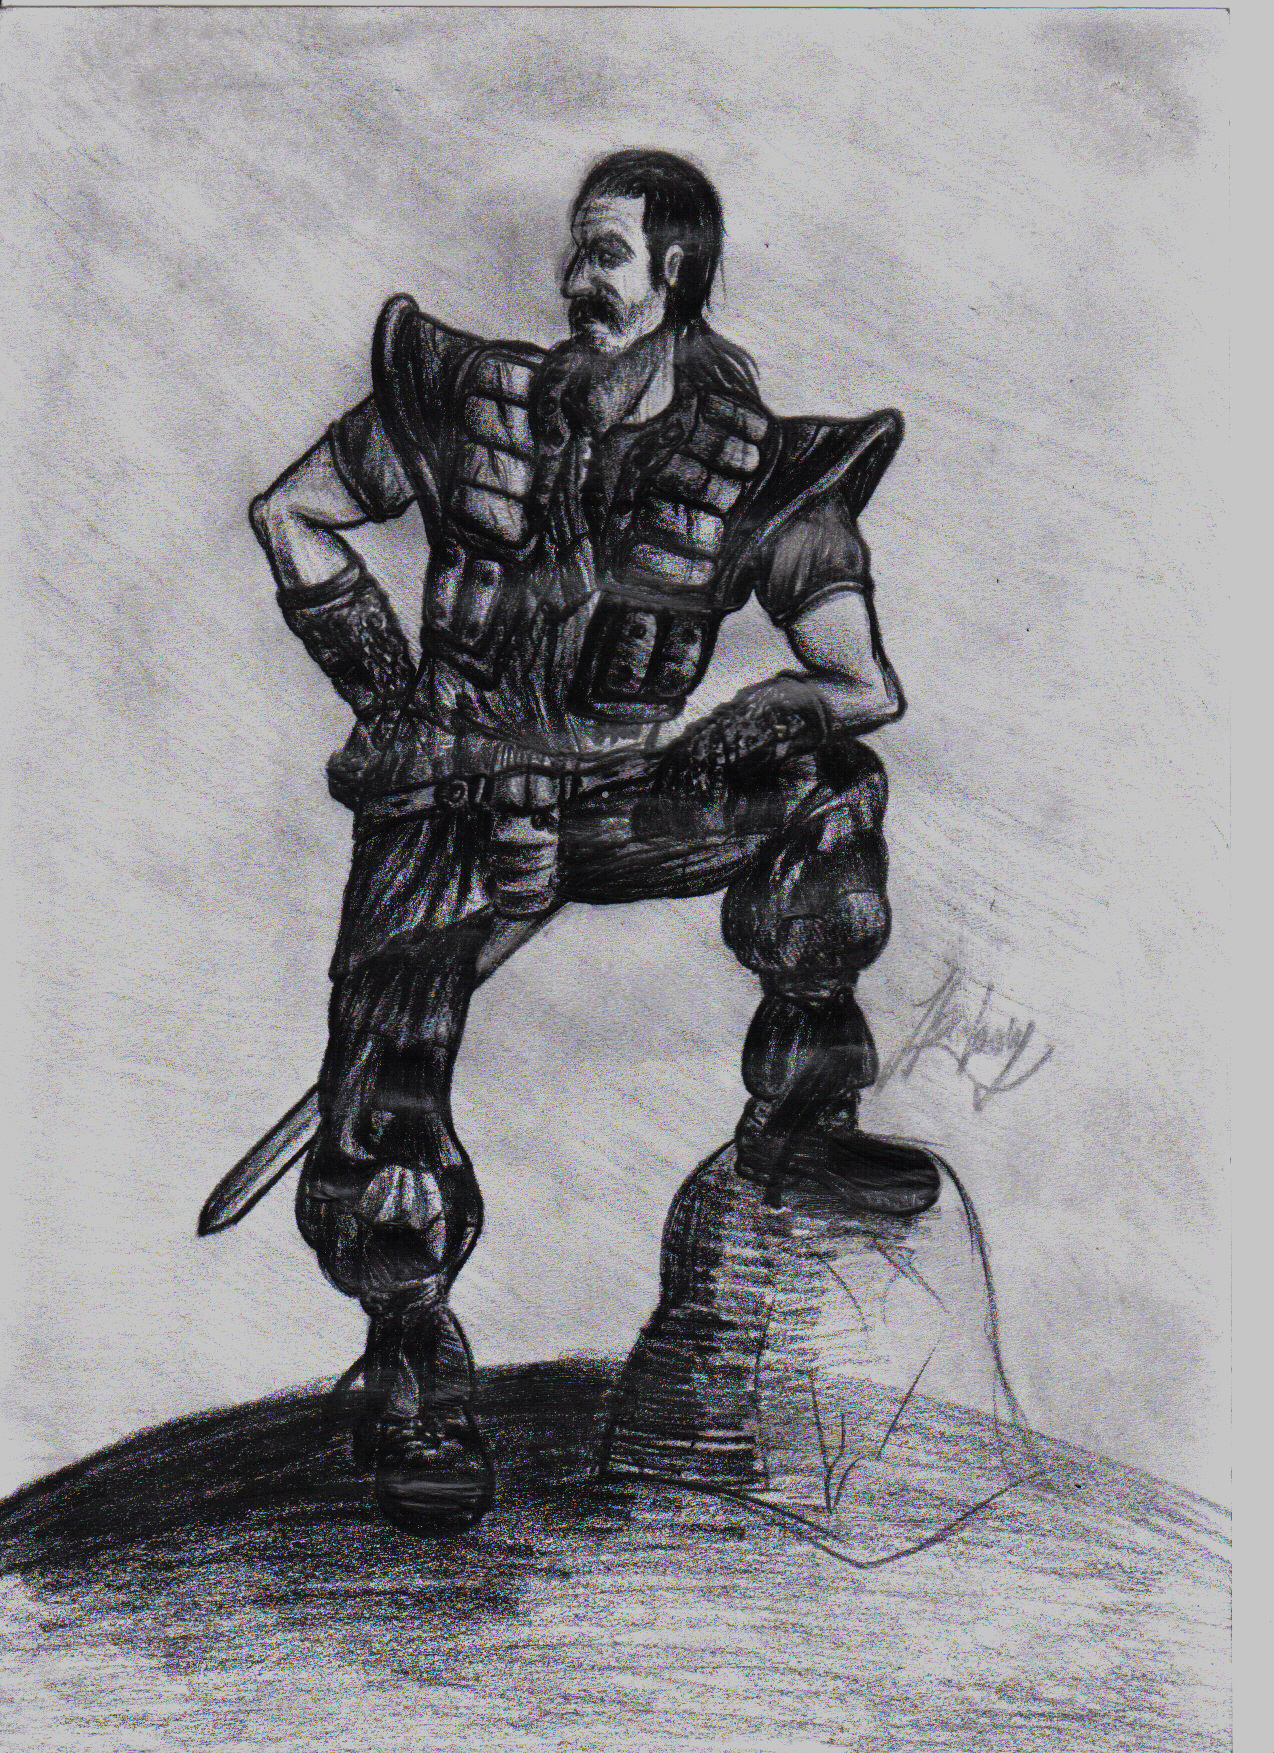 diego__the_shadow_by_alyn26.jpg